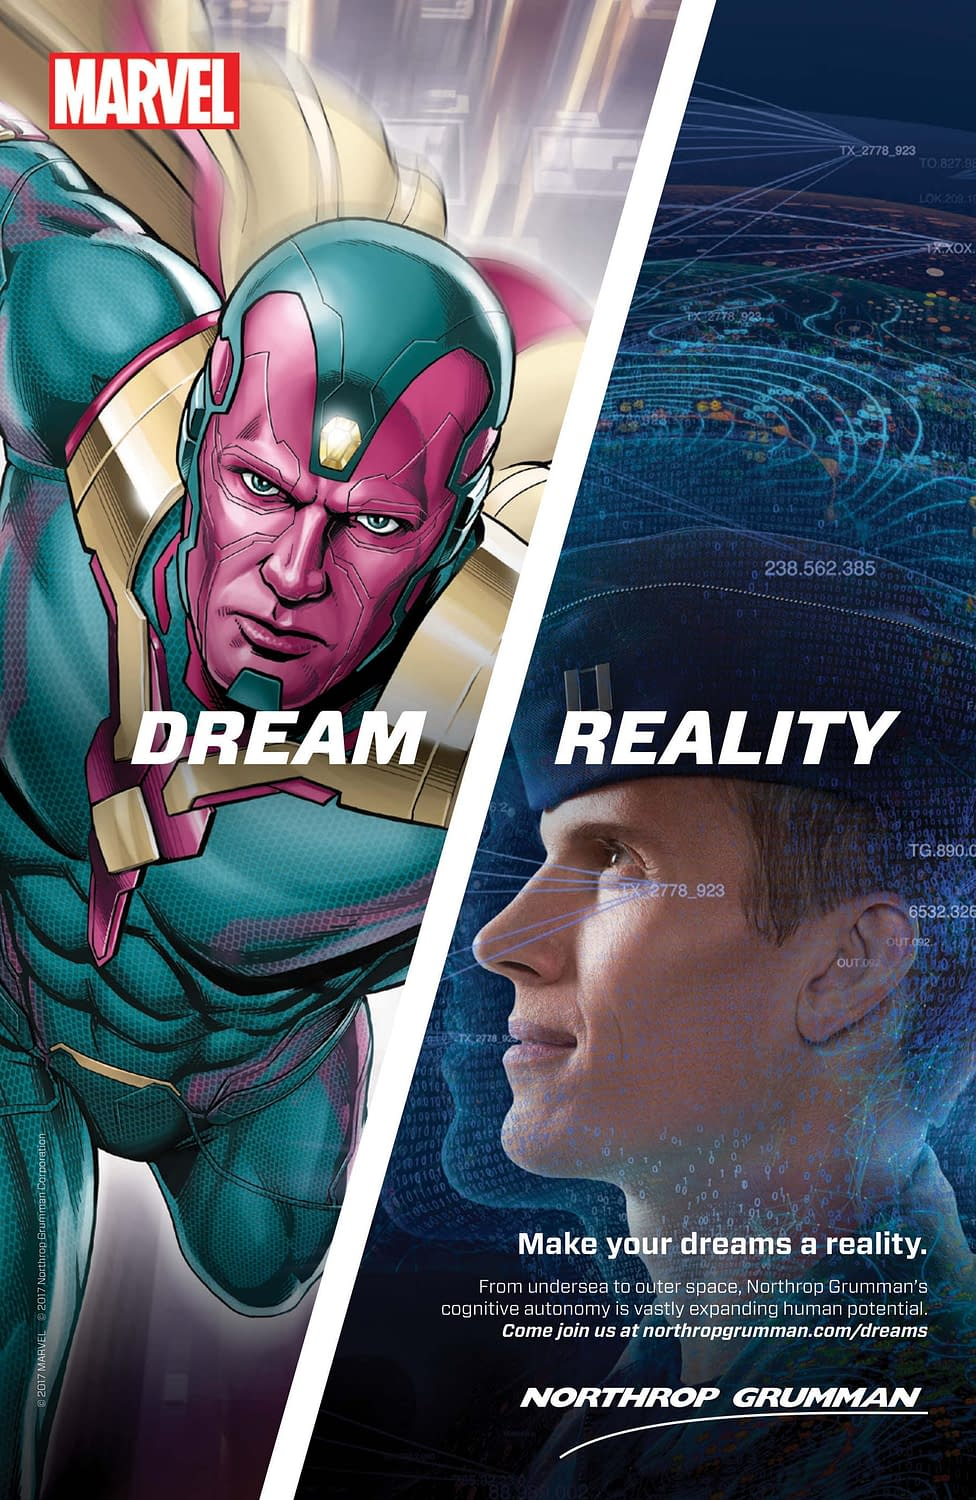 Marvel And Northrop Grumman Seeking Codebreakers For Team-Up Sweepstakes